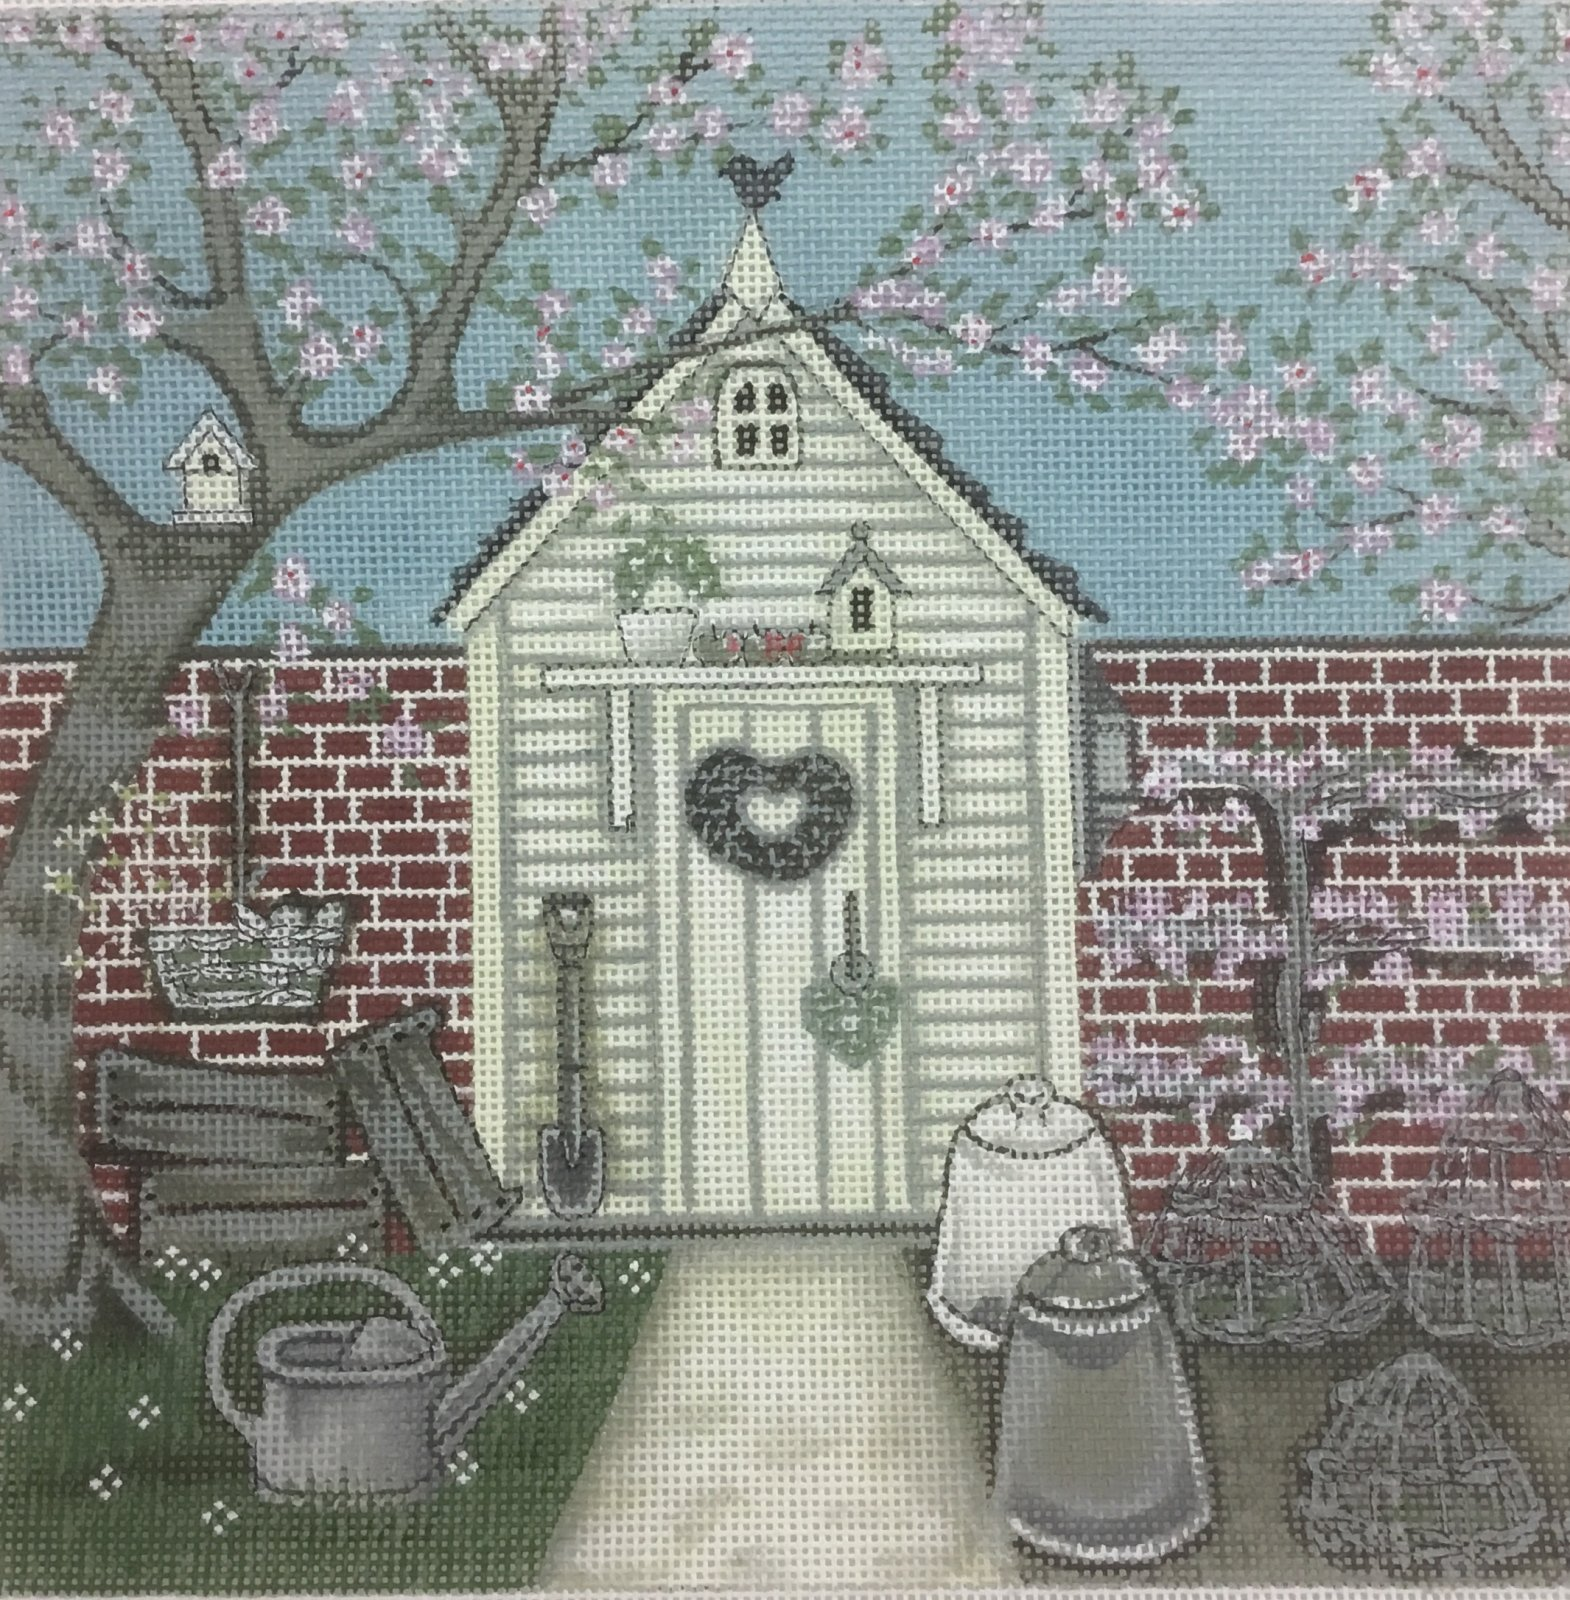 Potting Shed,18 ct.,8x8